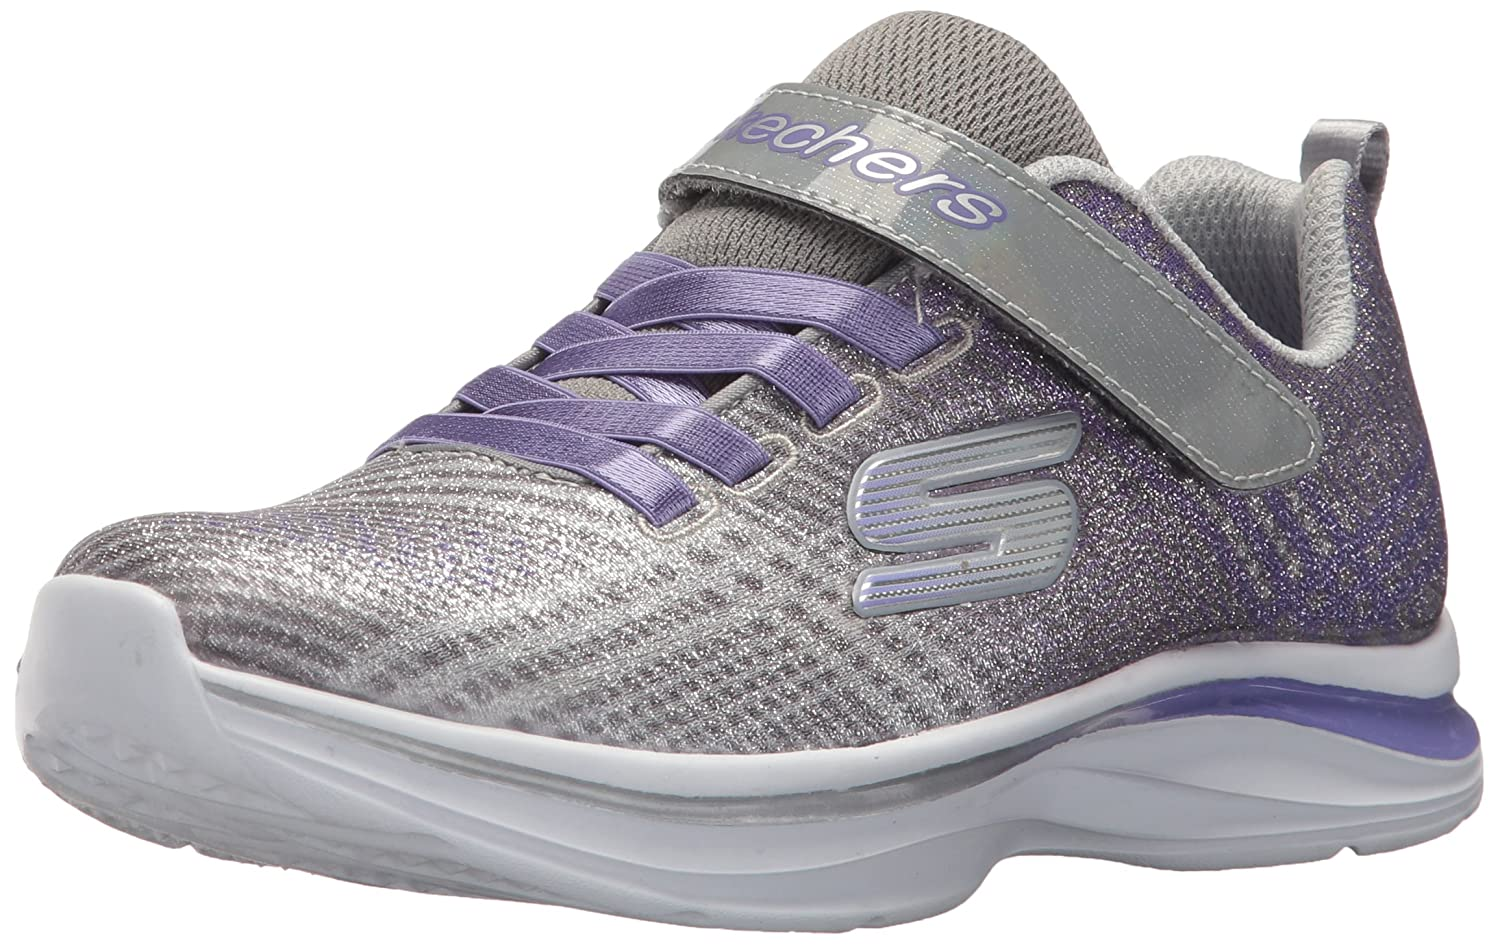 501e39af4067 Skechers Kids Girls  Double Dreams Sneaker pumps